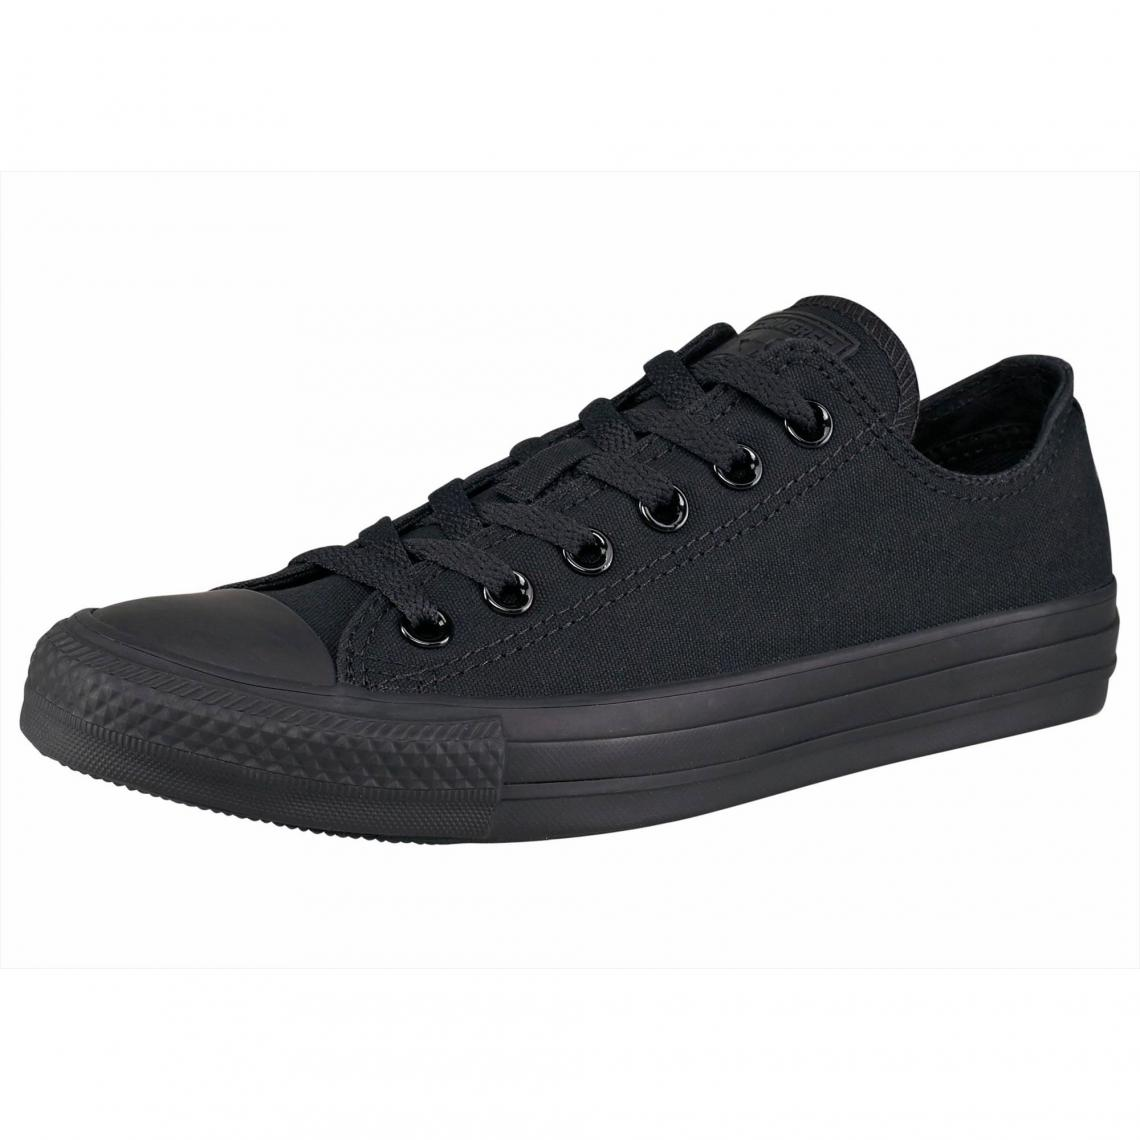 sneakers homme converse